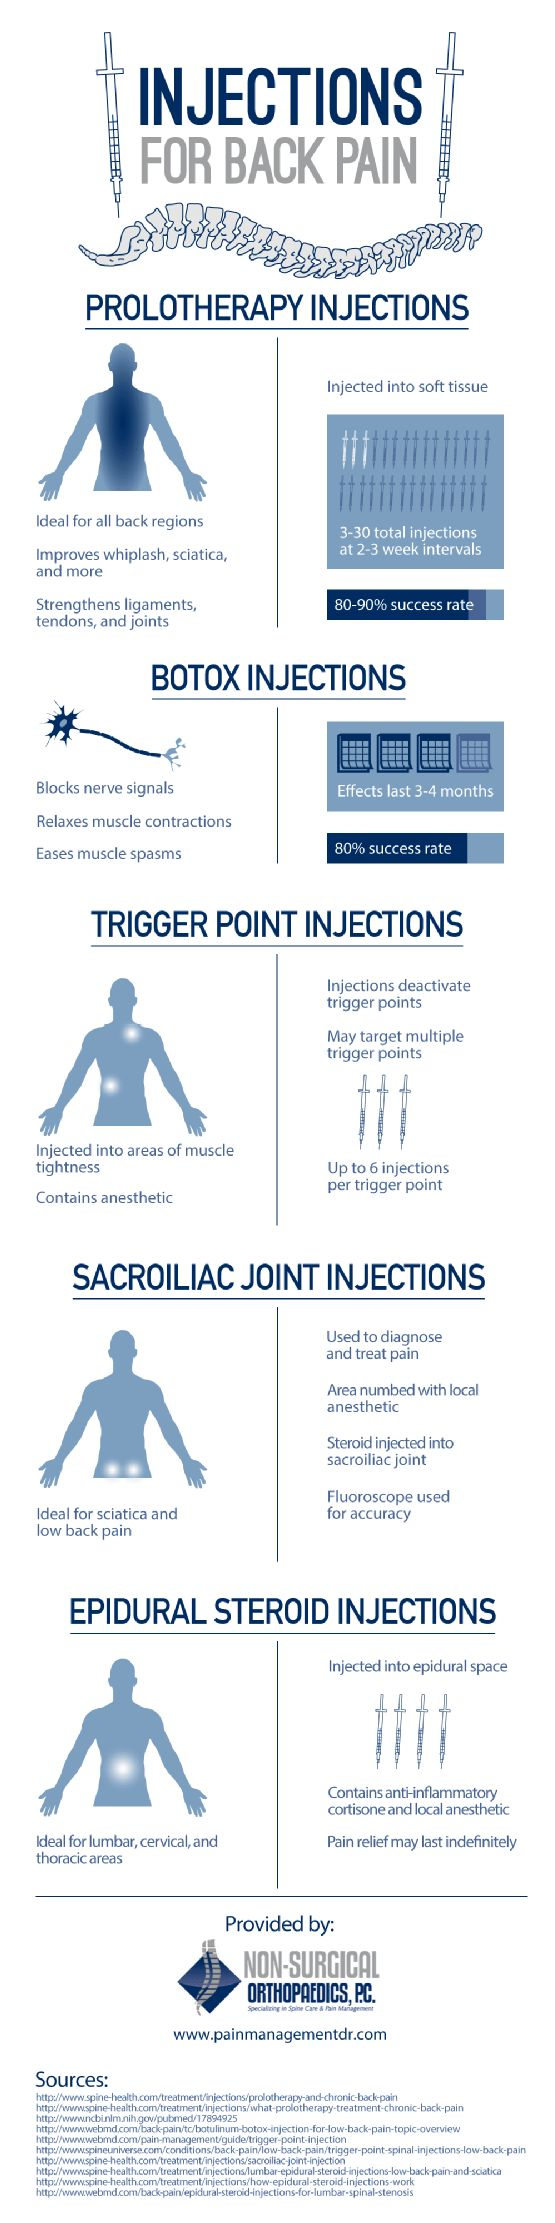 Injections for Back Pain [INFOGRAPHIC] | Repinned by @michaelgleiber